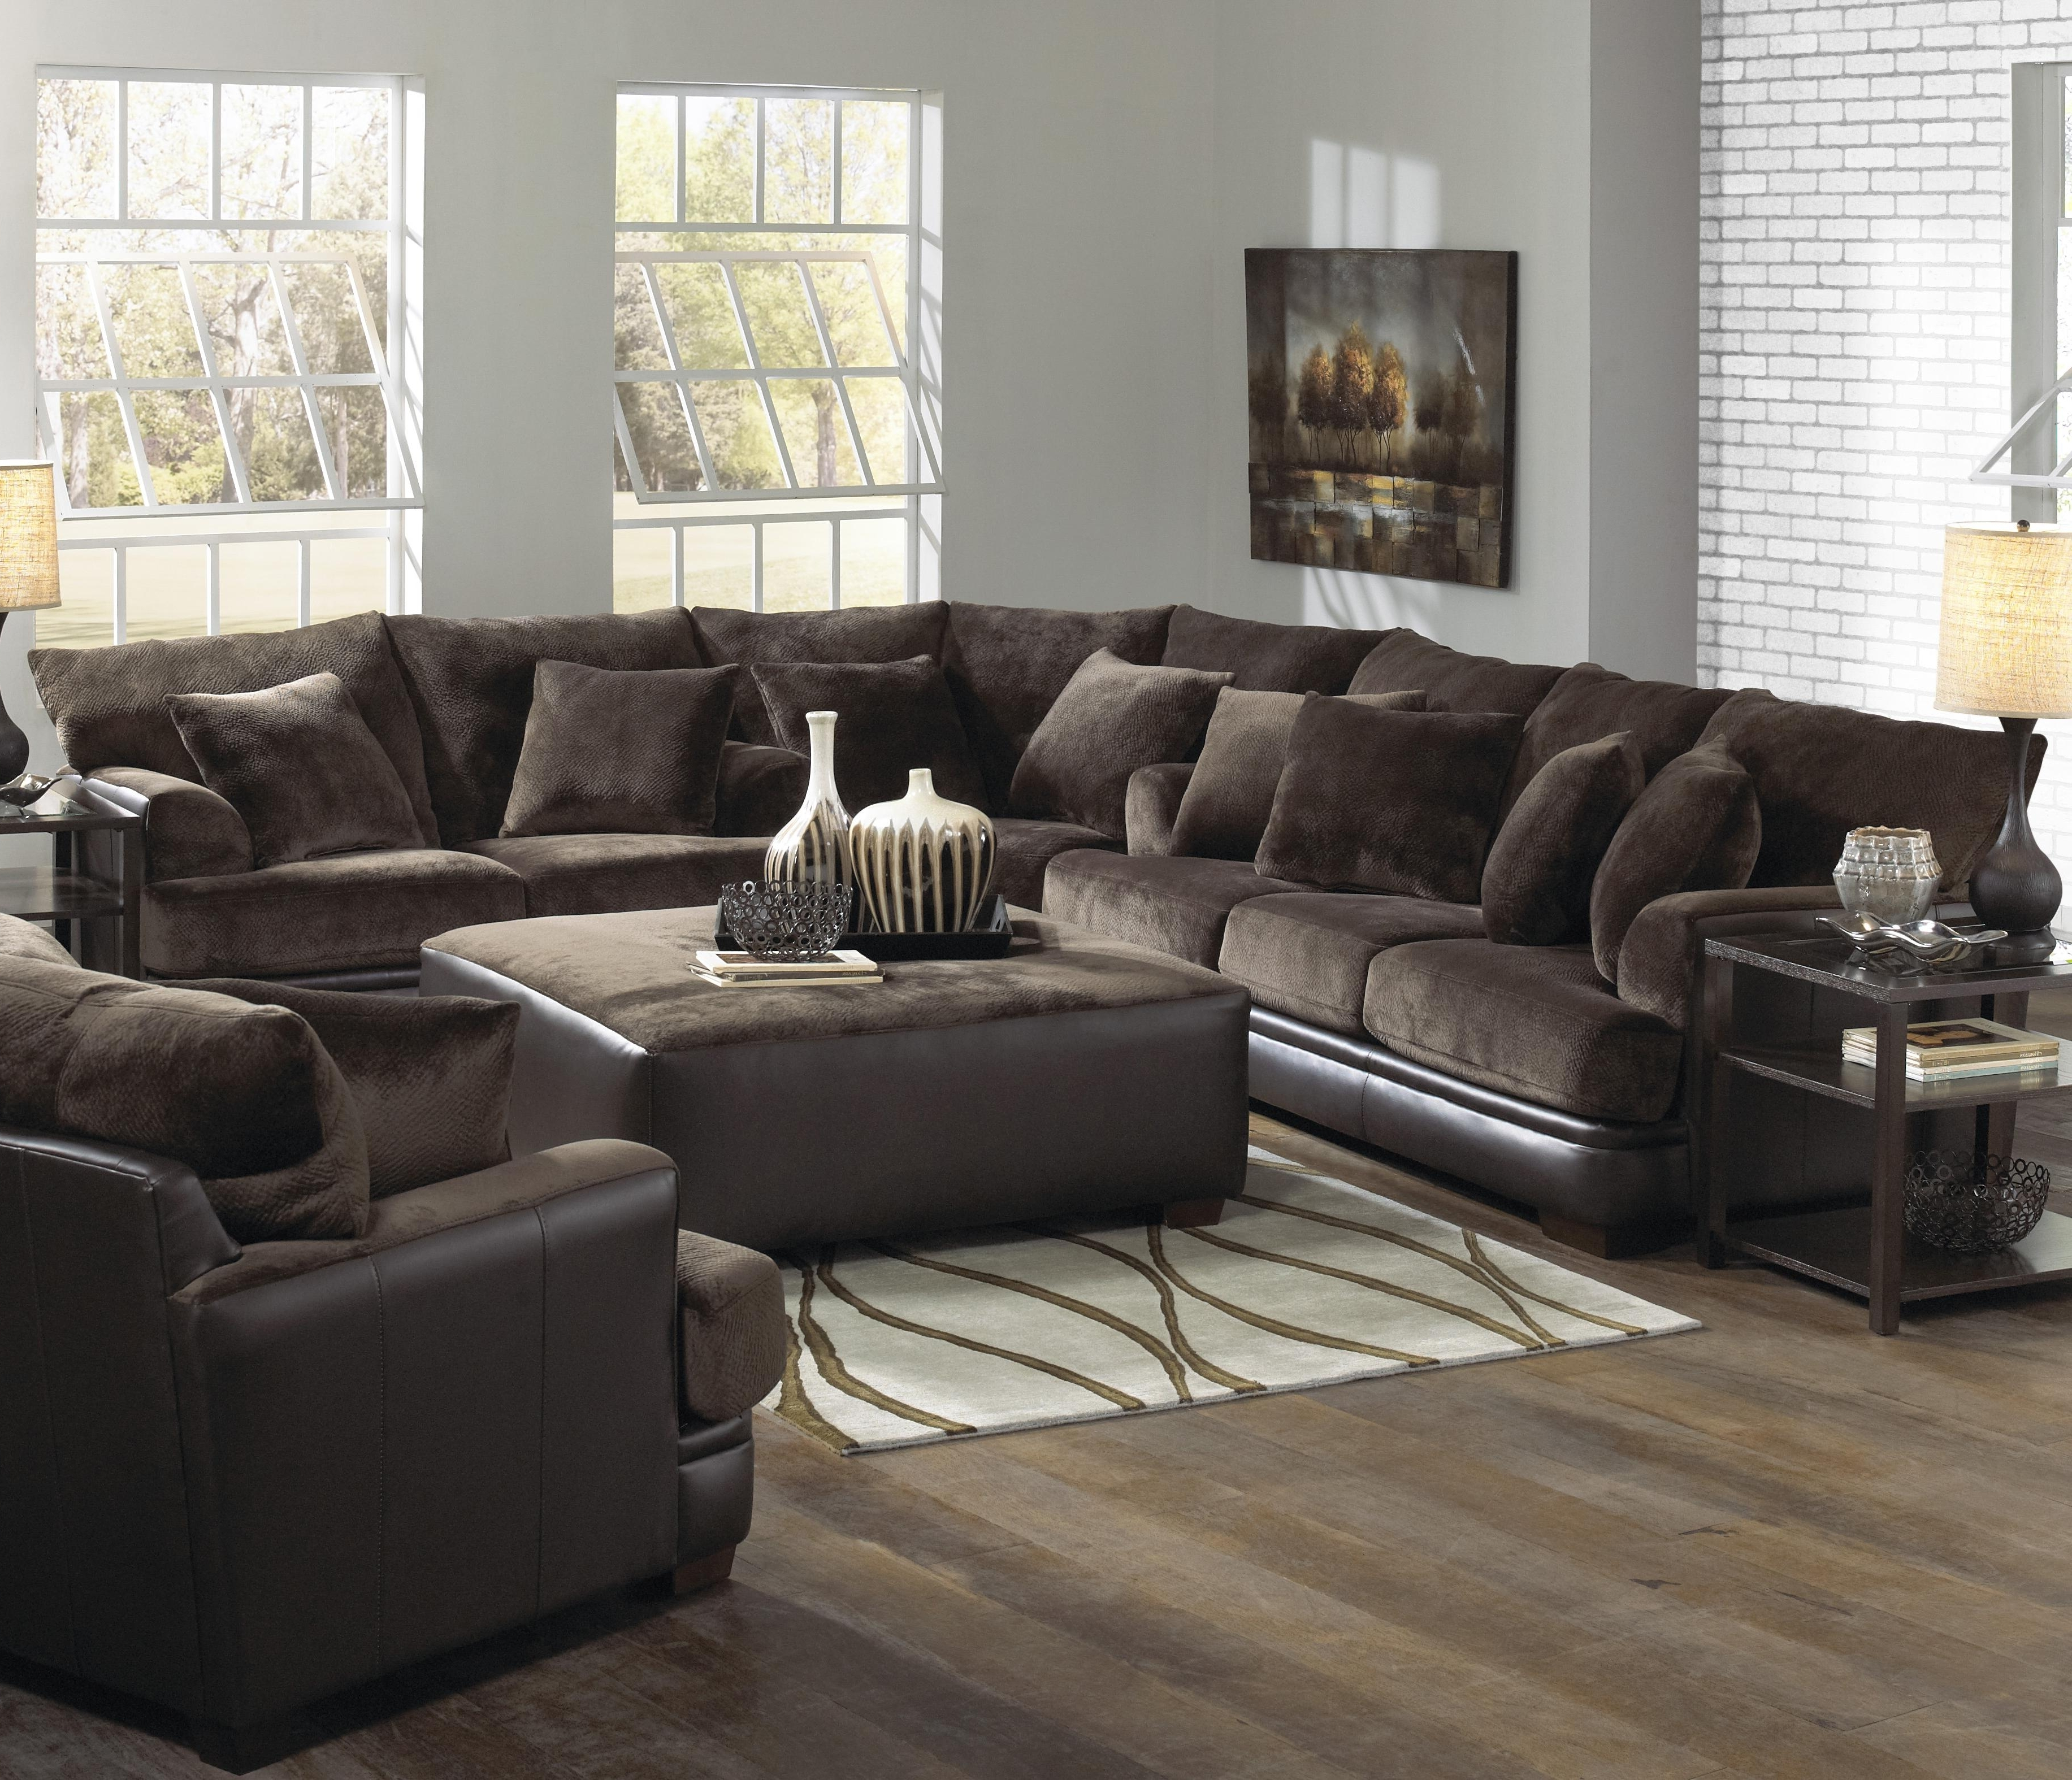 Fashionable Big U Shaped Couches Pertaining To Big Sofas Wide Seat Sectional Small U Shaped Sectional Top Rated (View 2 of 15)